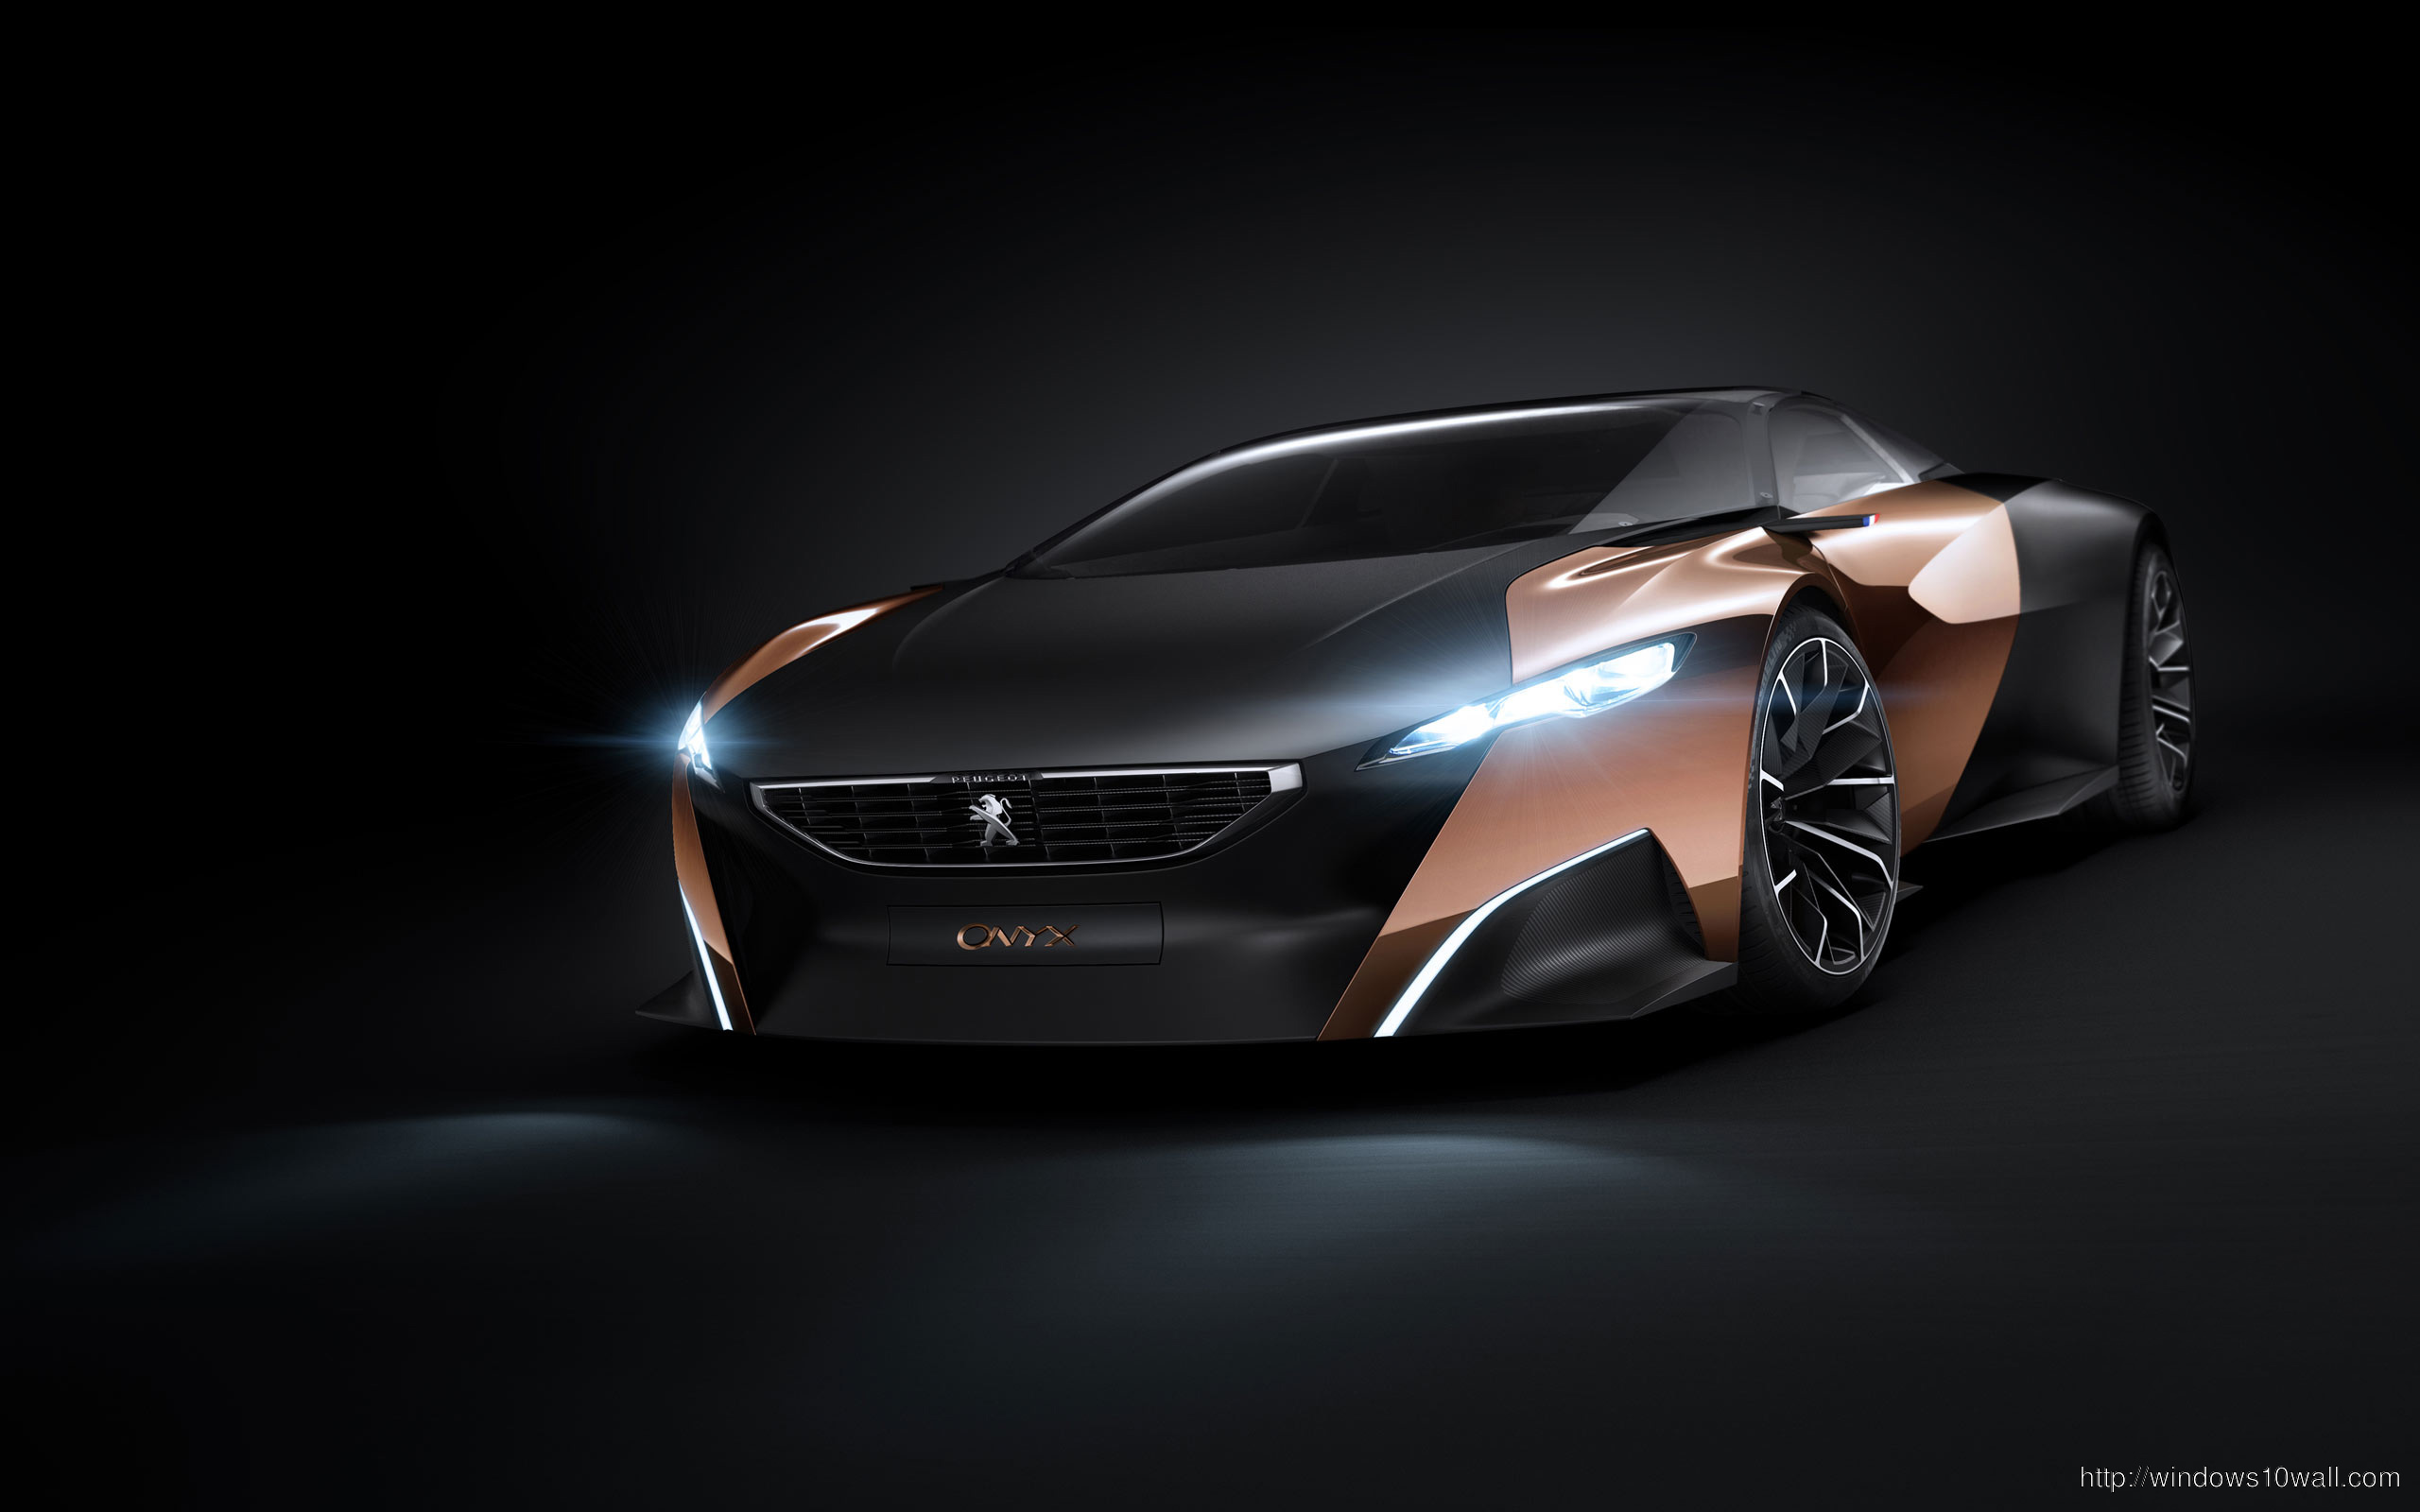 Peugeot Onyx Concept HD Car Background Wallpaper